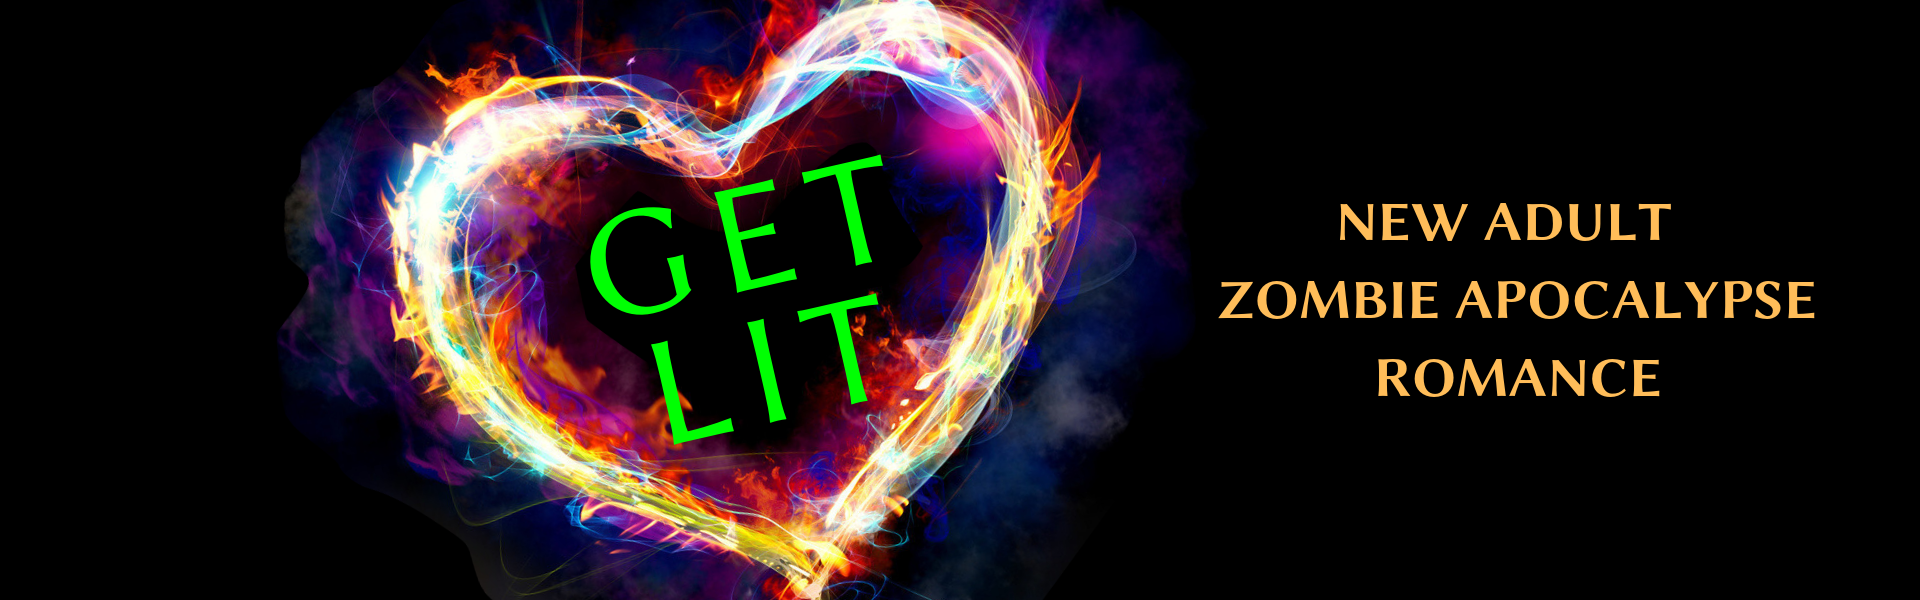 Get-Lit-by-Emma-Isaac-Website-banner.png